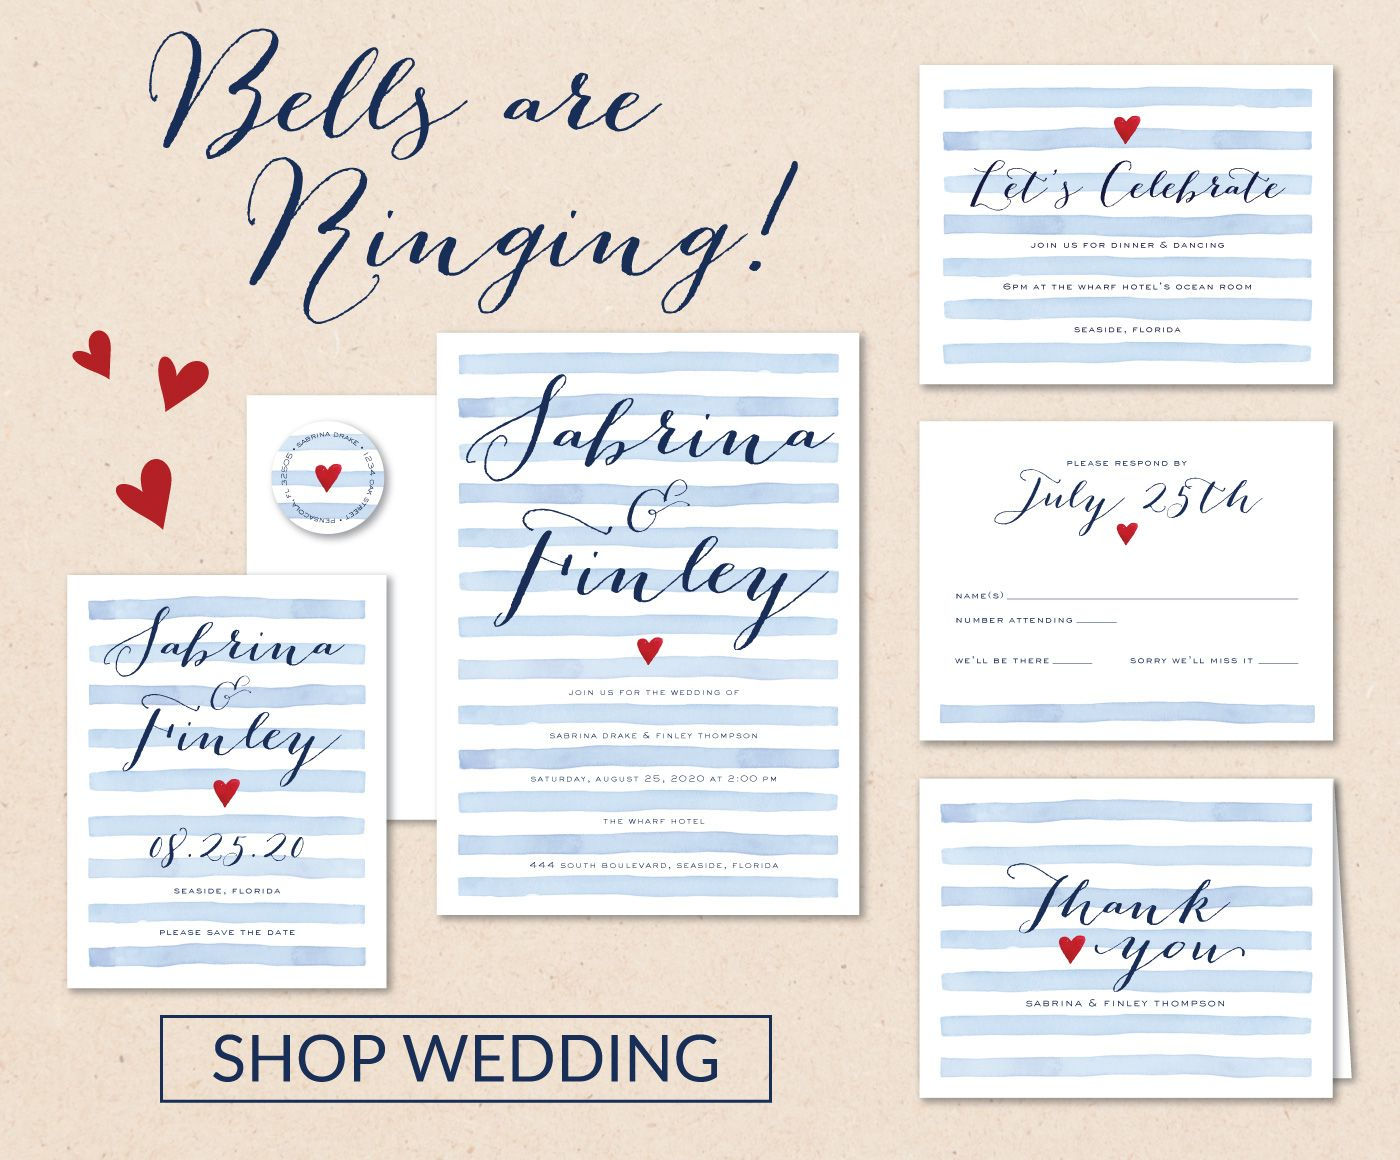 New Invitations for Wedding, Wedding Ensembles, Place Cards, Thank ...